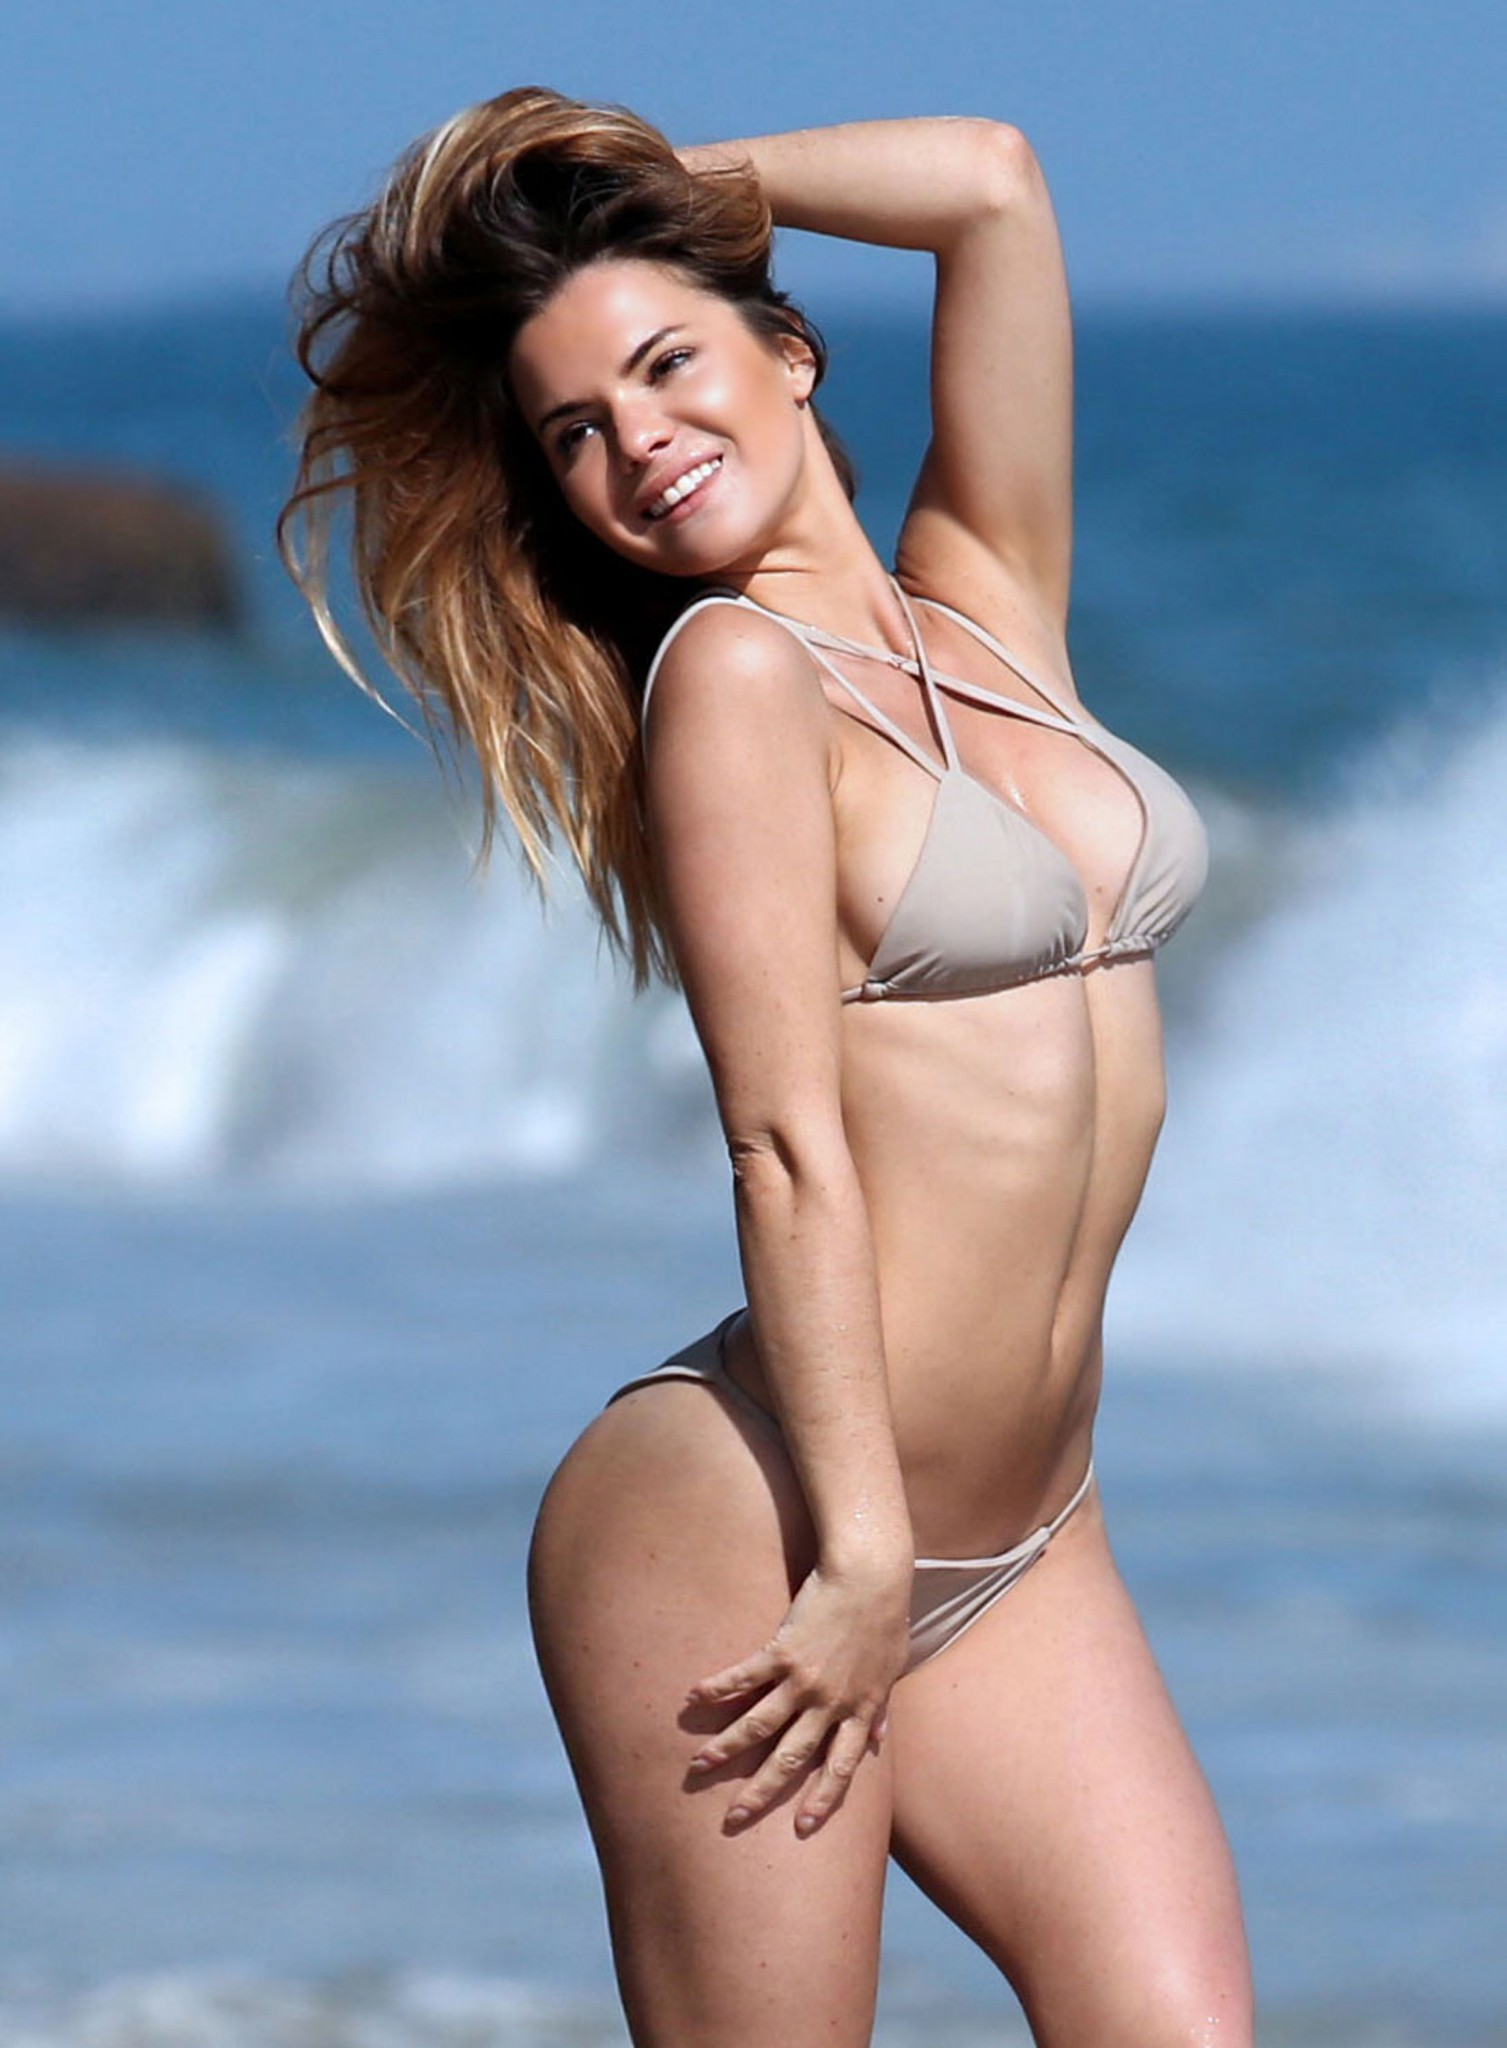 kaili-thorne-thong-bikini-photo-shoot-for-138-water-33